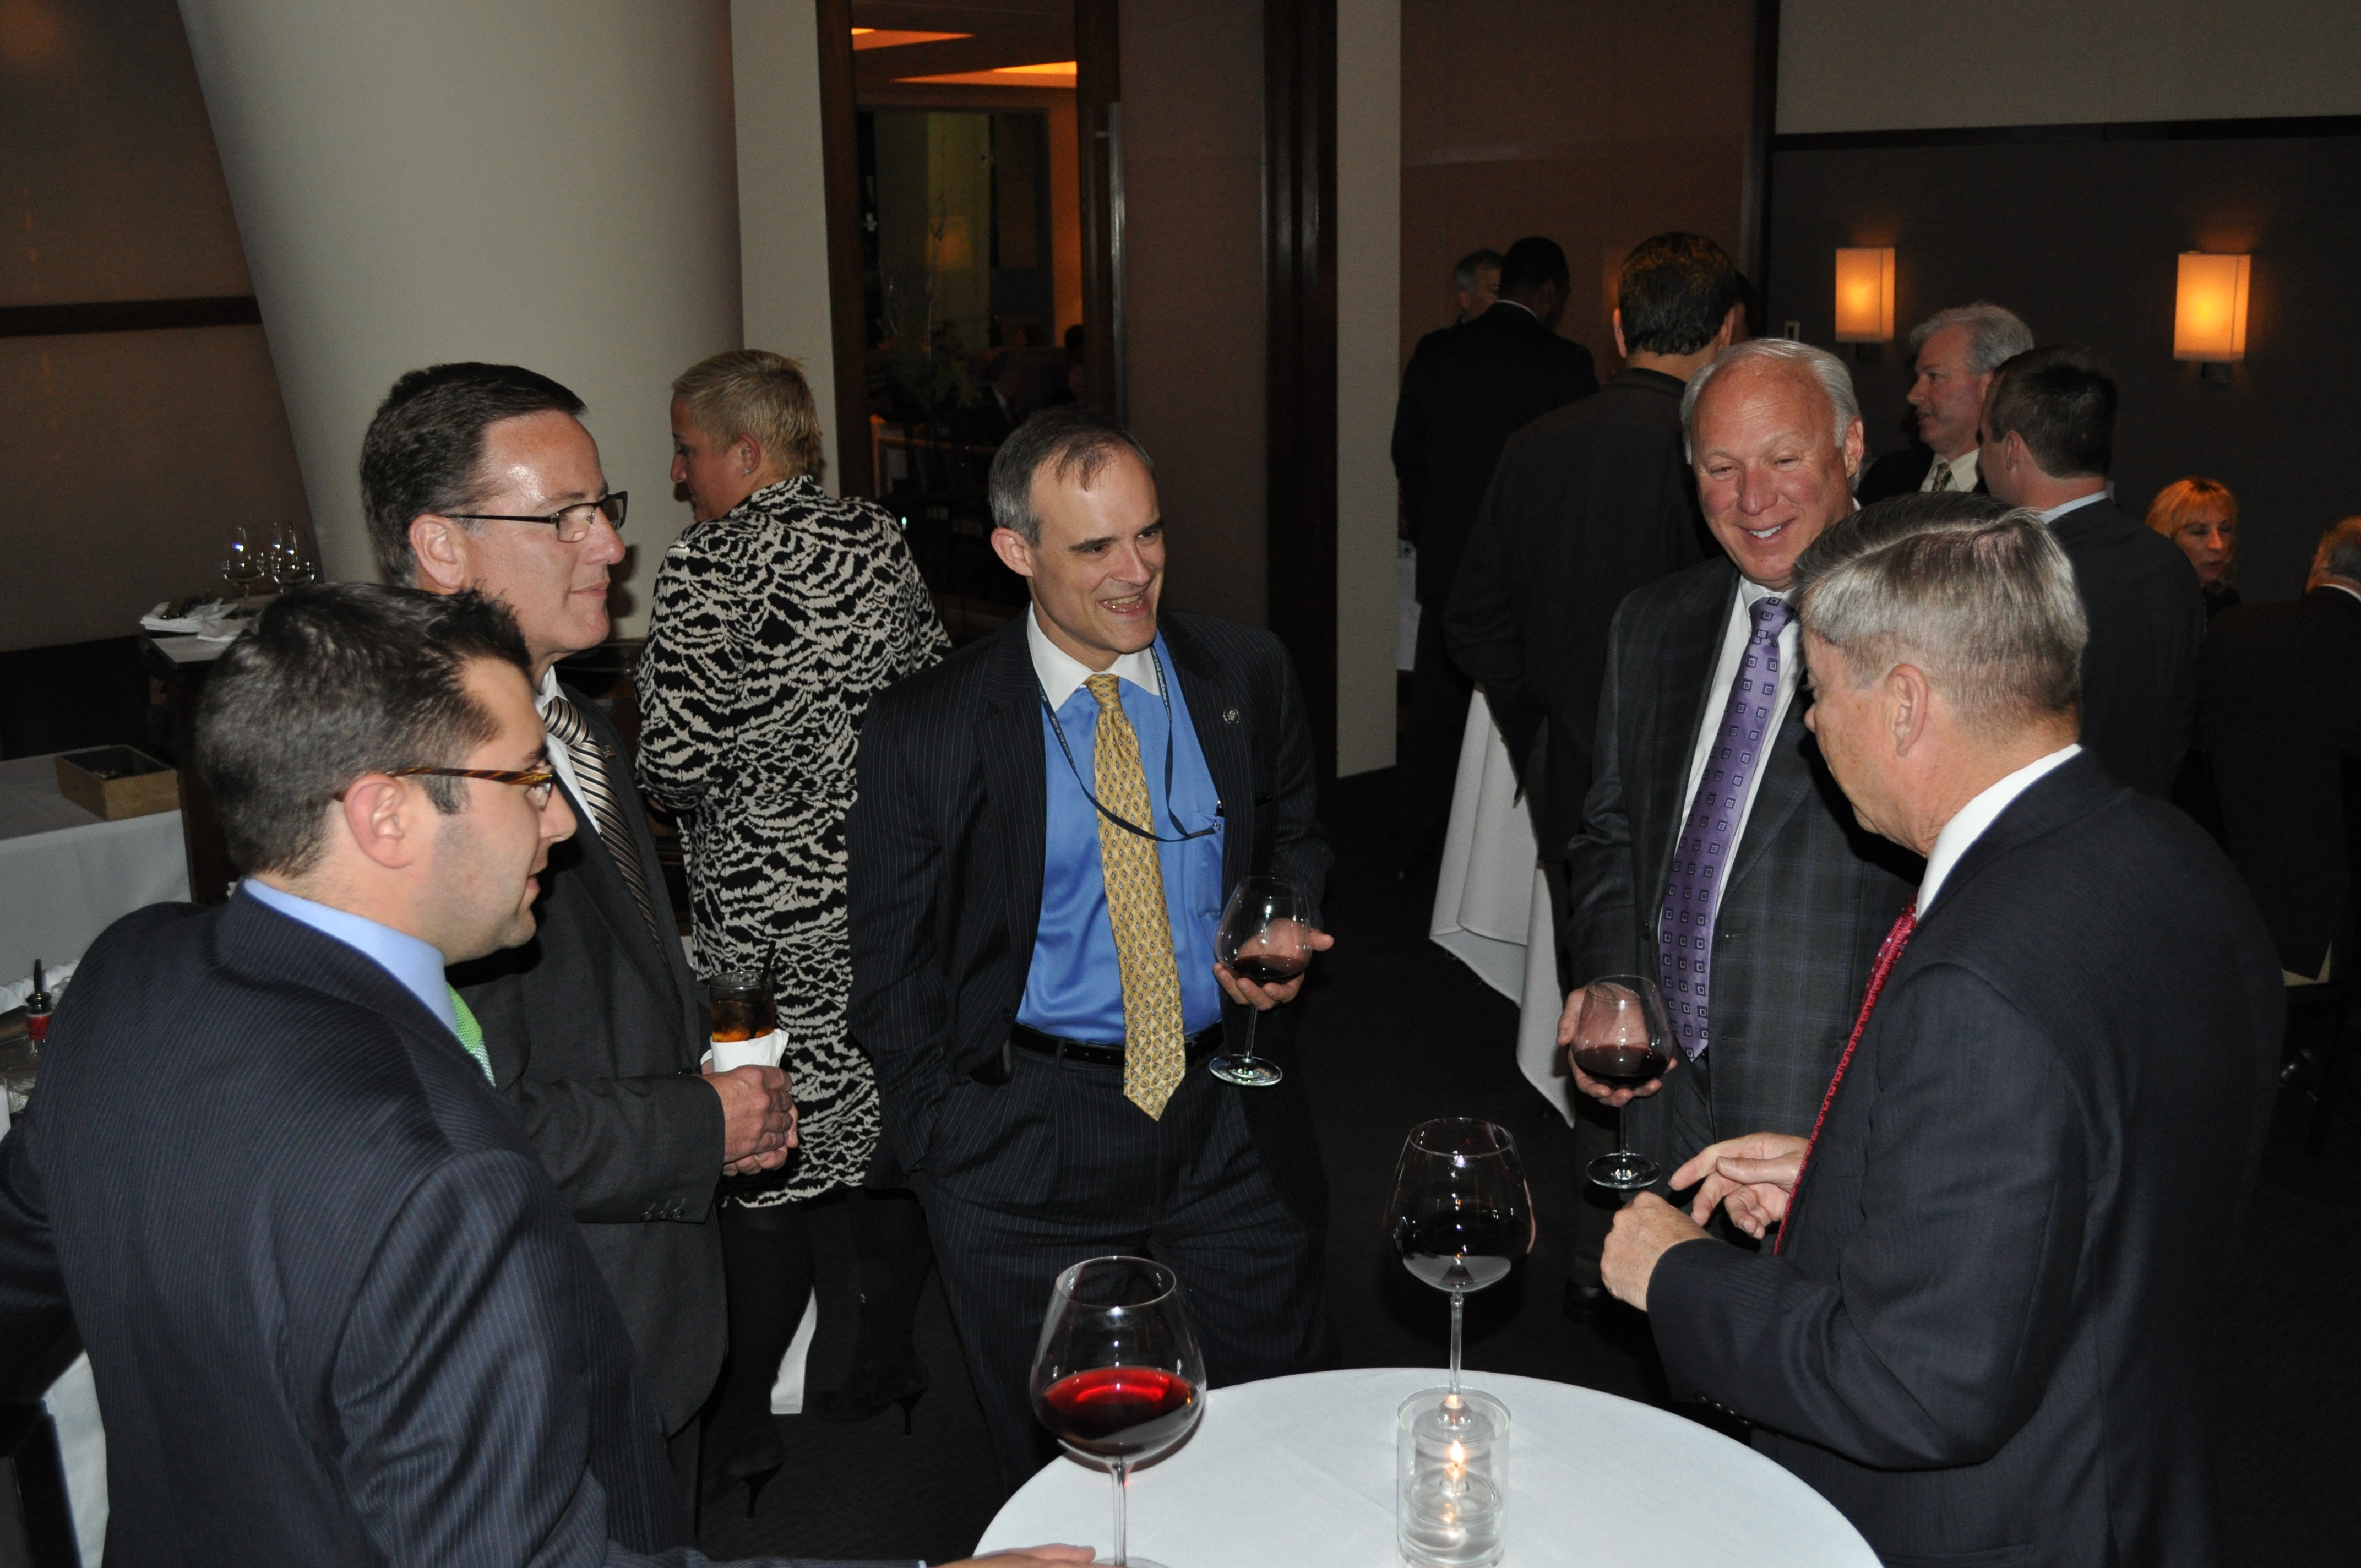 Then White House Cybersecurity Coordinator Michael Daniel (center) shared a light moment with the board before dinner in 2013.